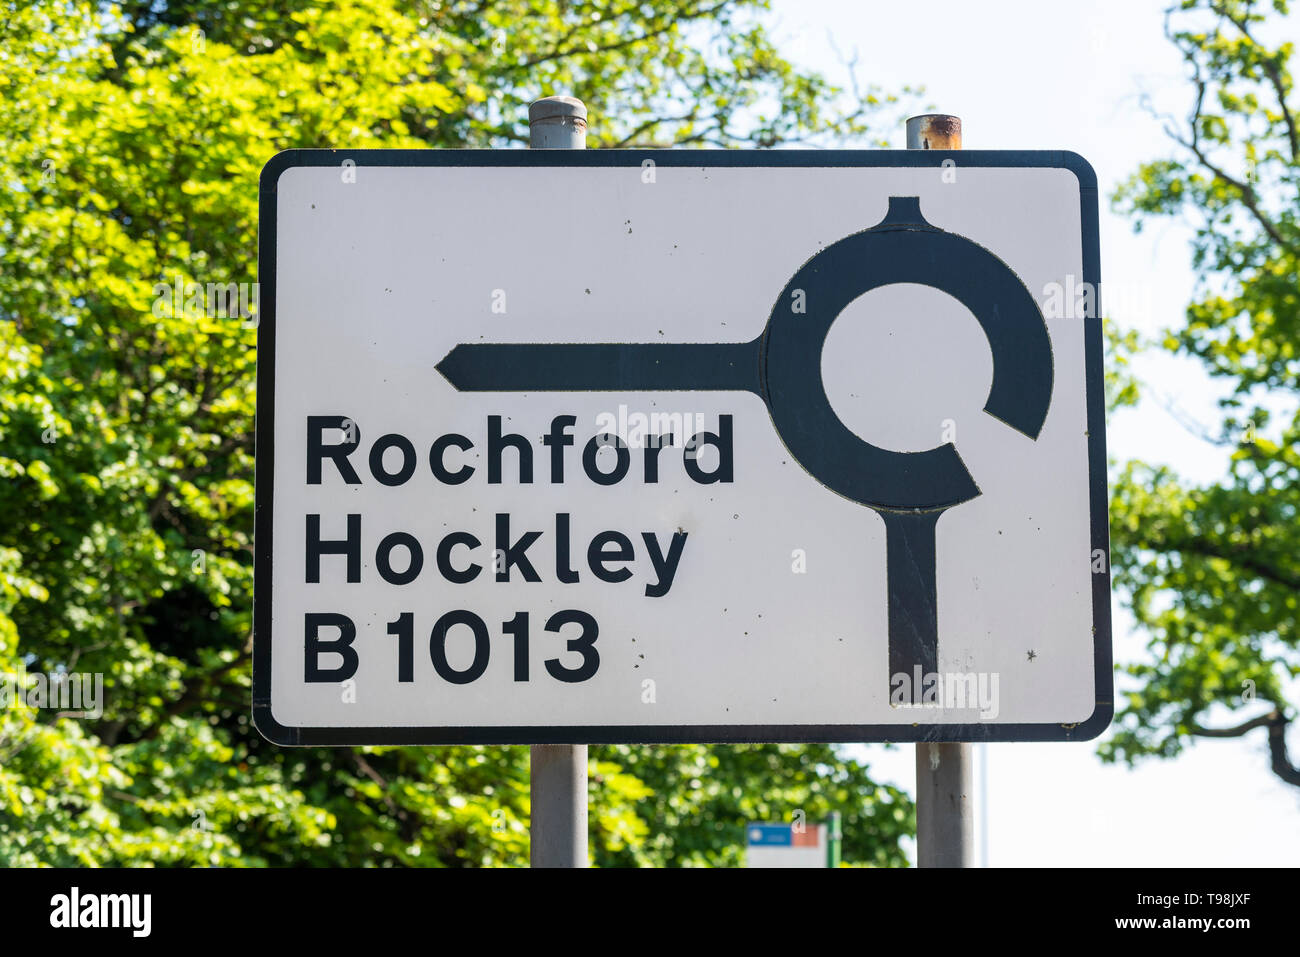 Rochford Essex Stock Photos & Rochford Essex Stock Images - Alamy